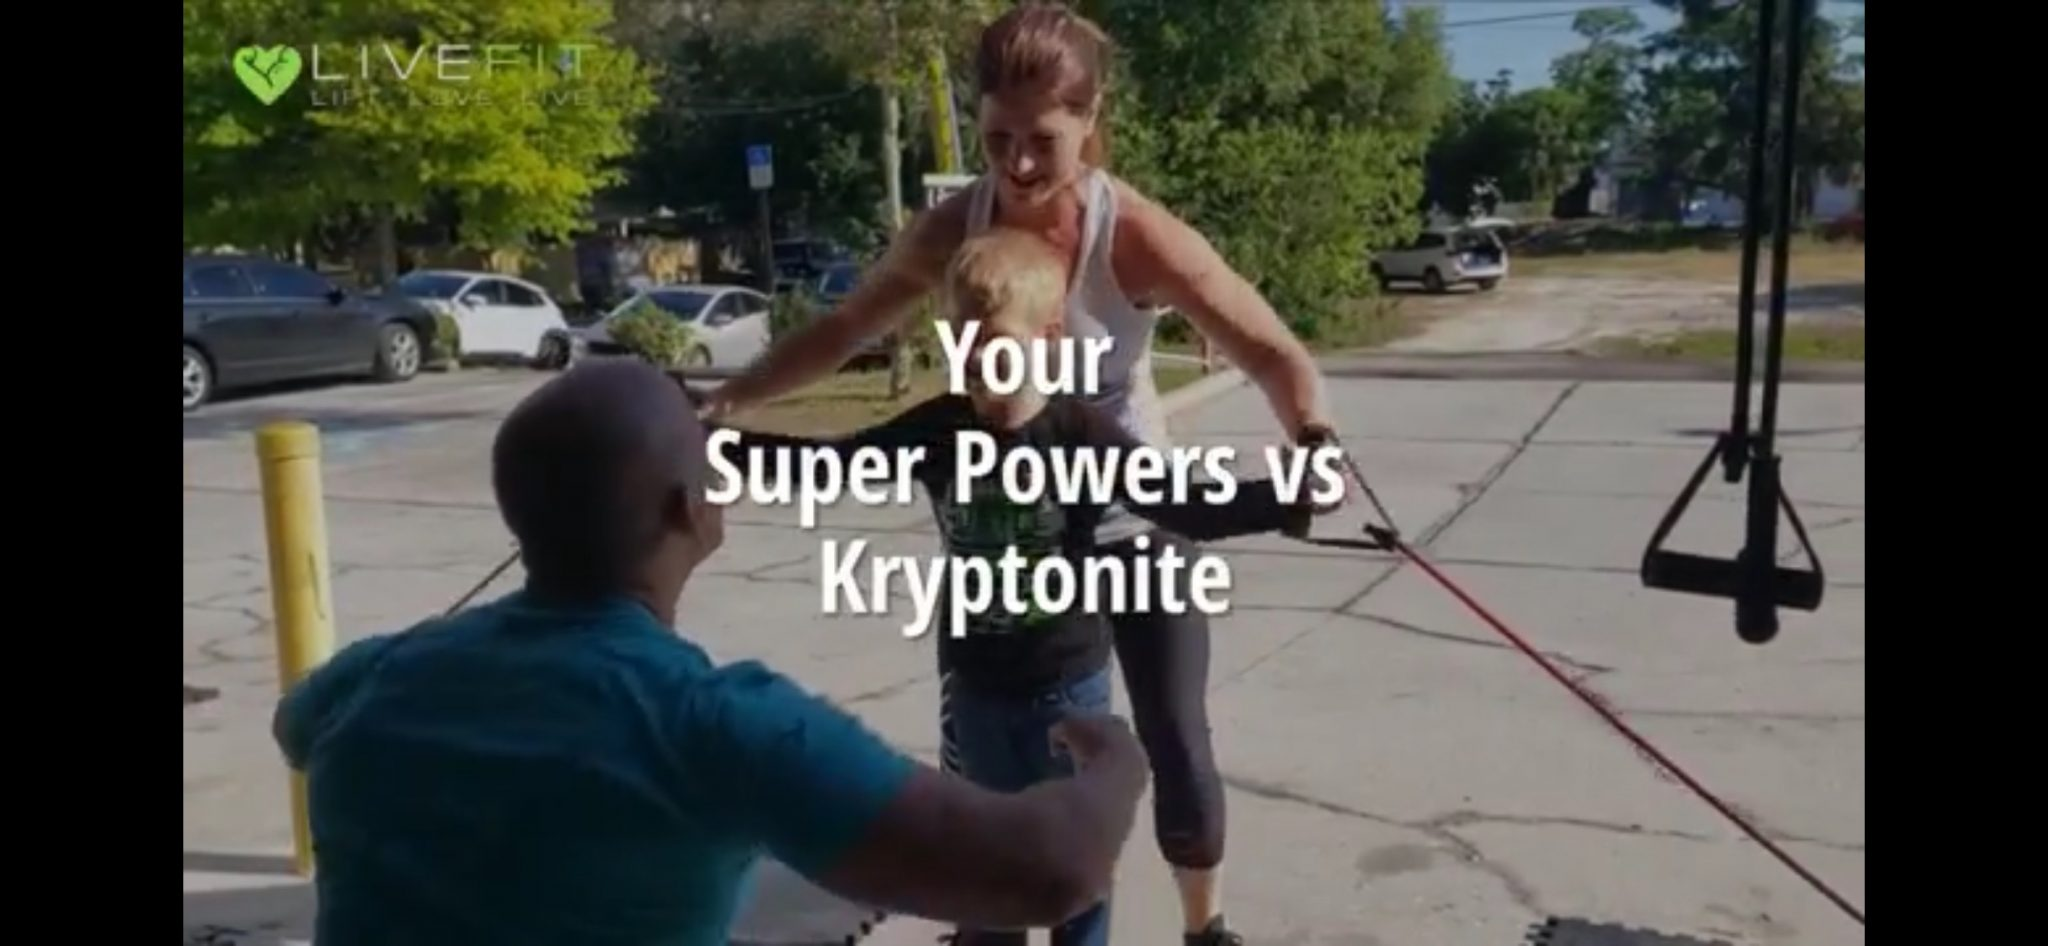 Your Superhero Power vs. Your Kryptonite